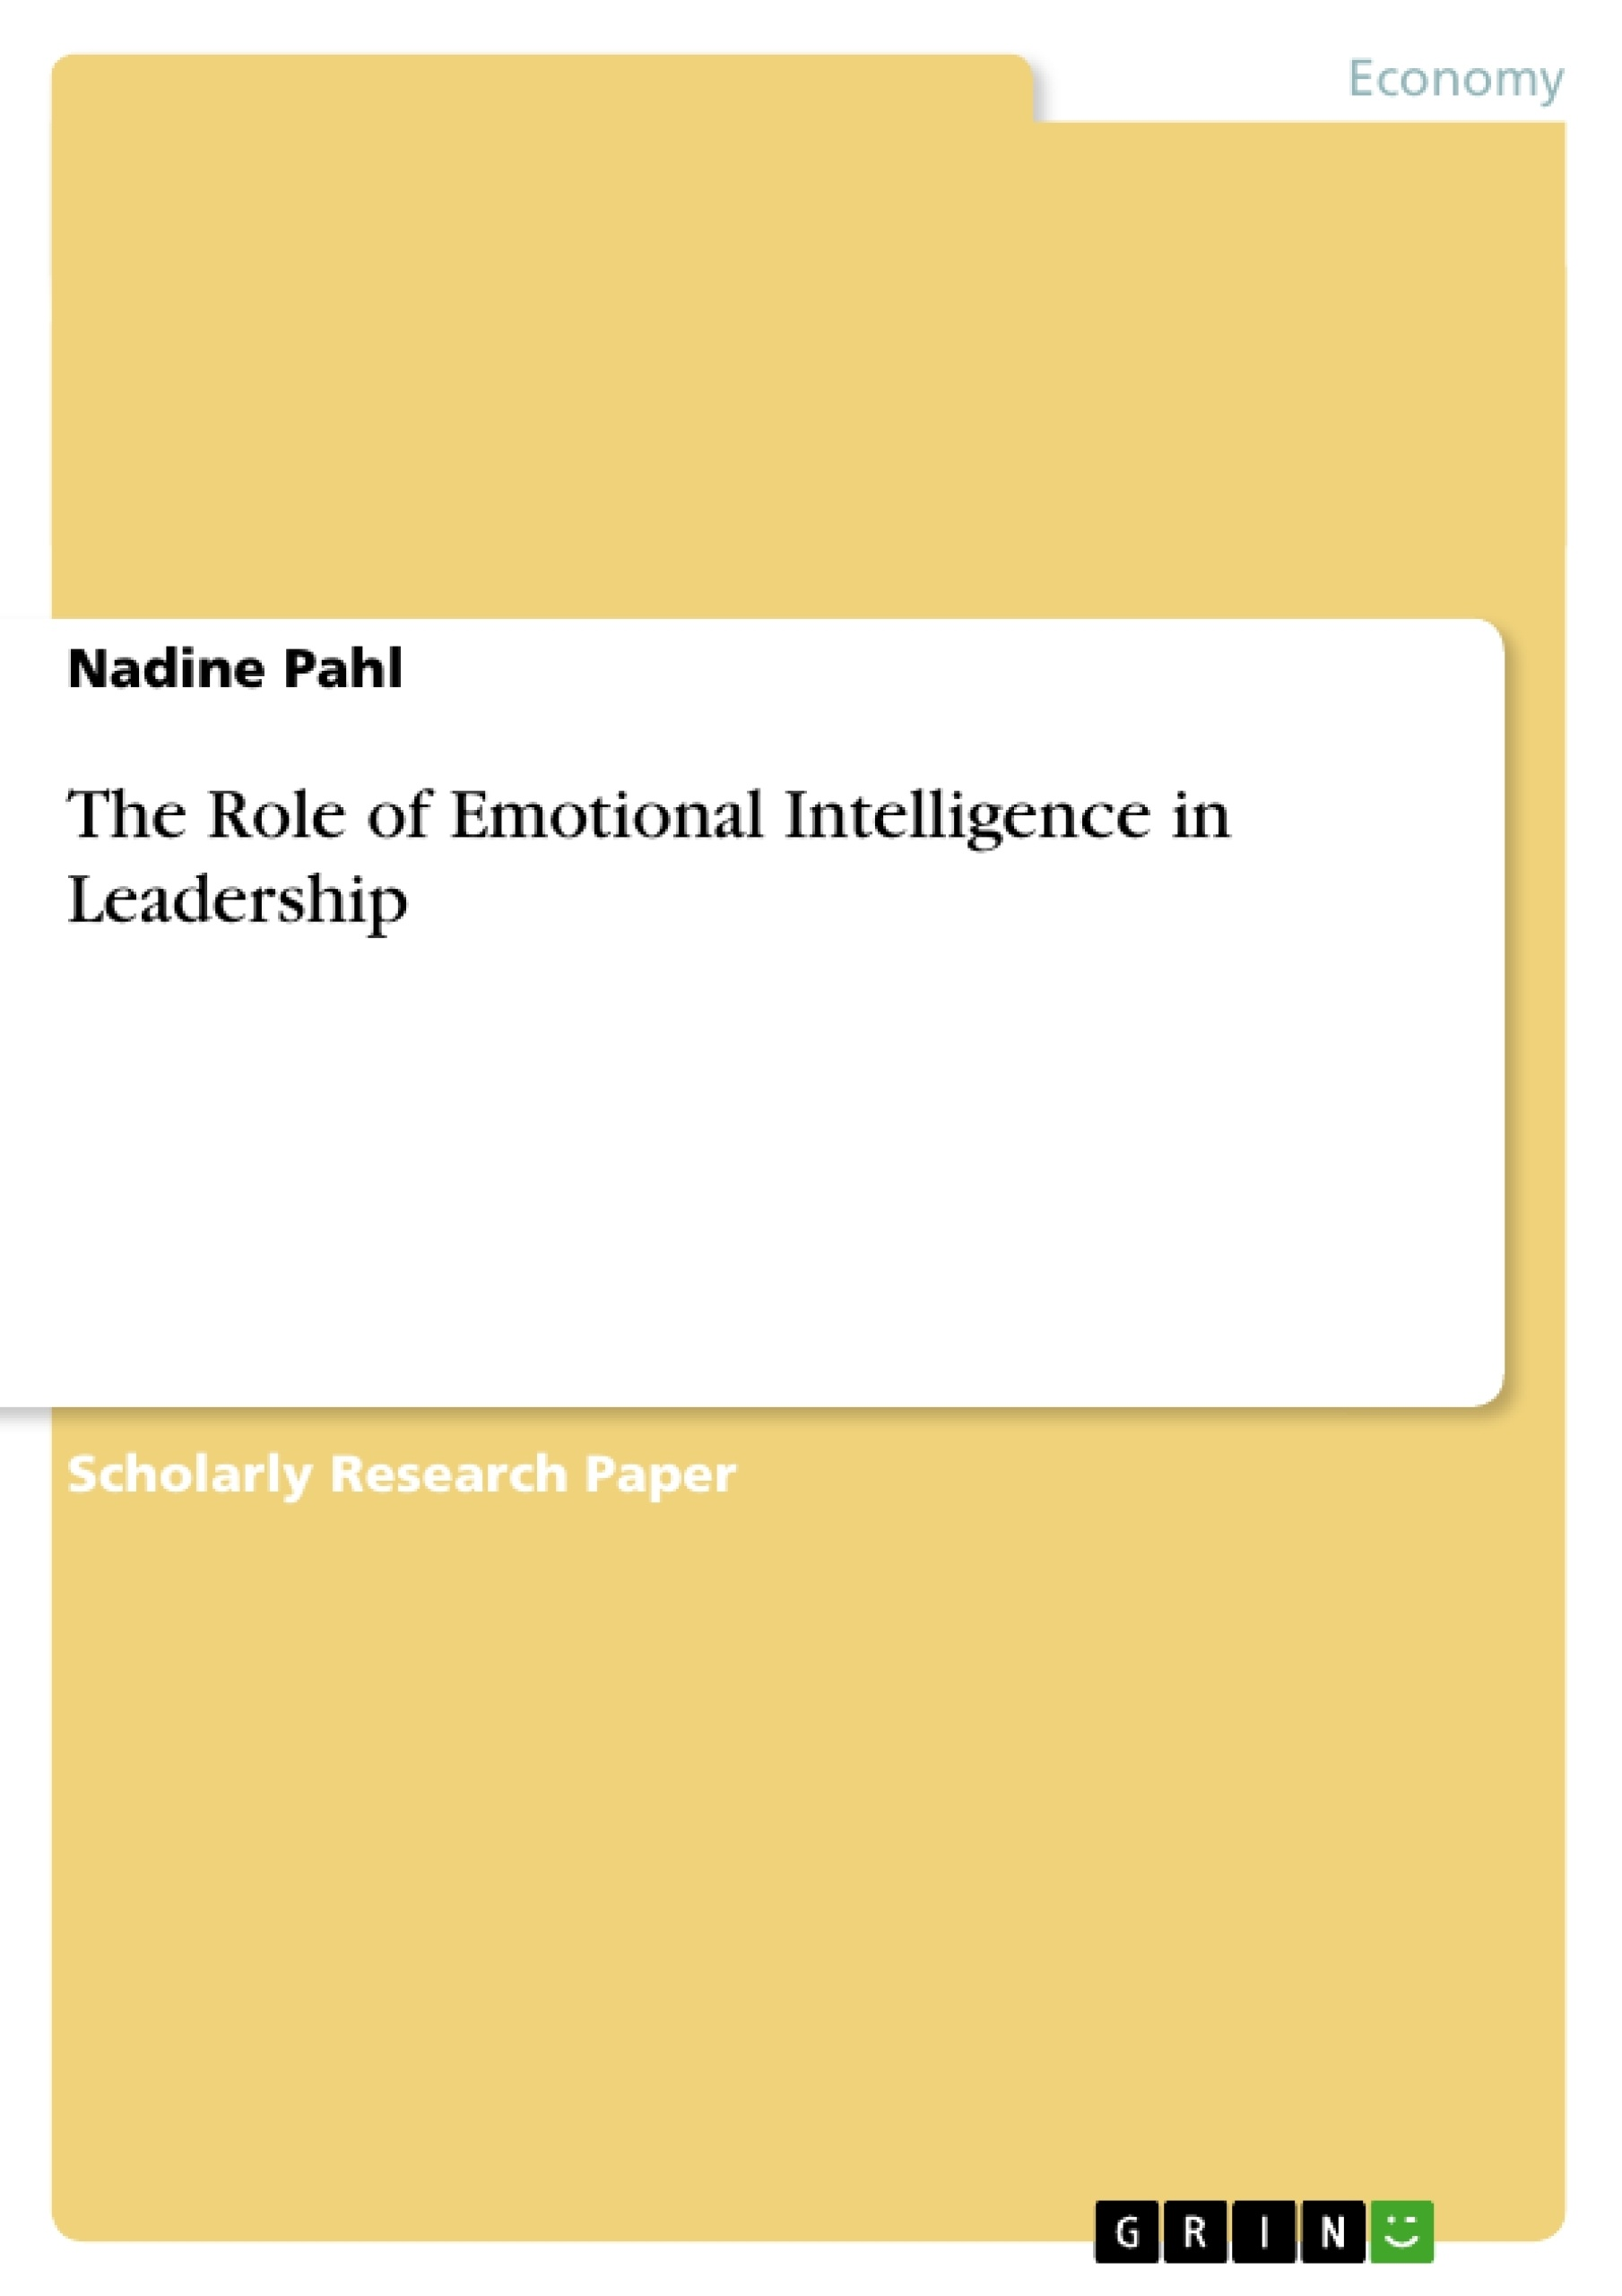 short essay on emotional intelligence games full text trait  the role of emotional intelligence in leadership publish your the role of emotional intelligence in leadership psychology essay questions